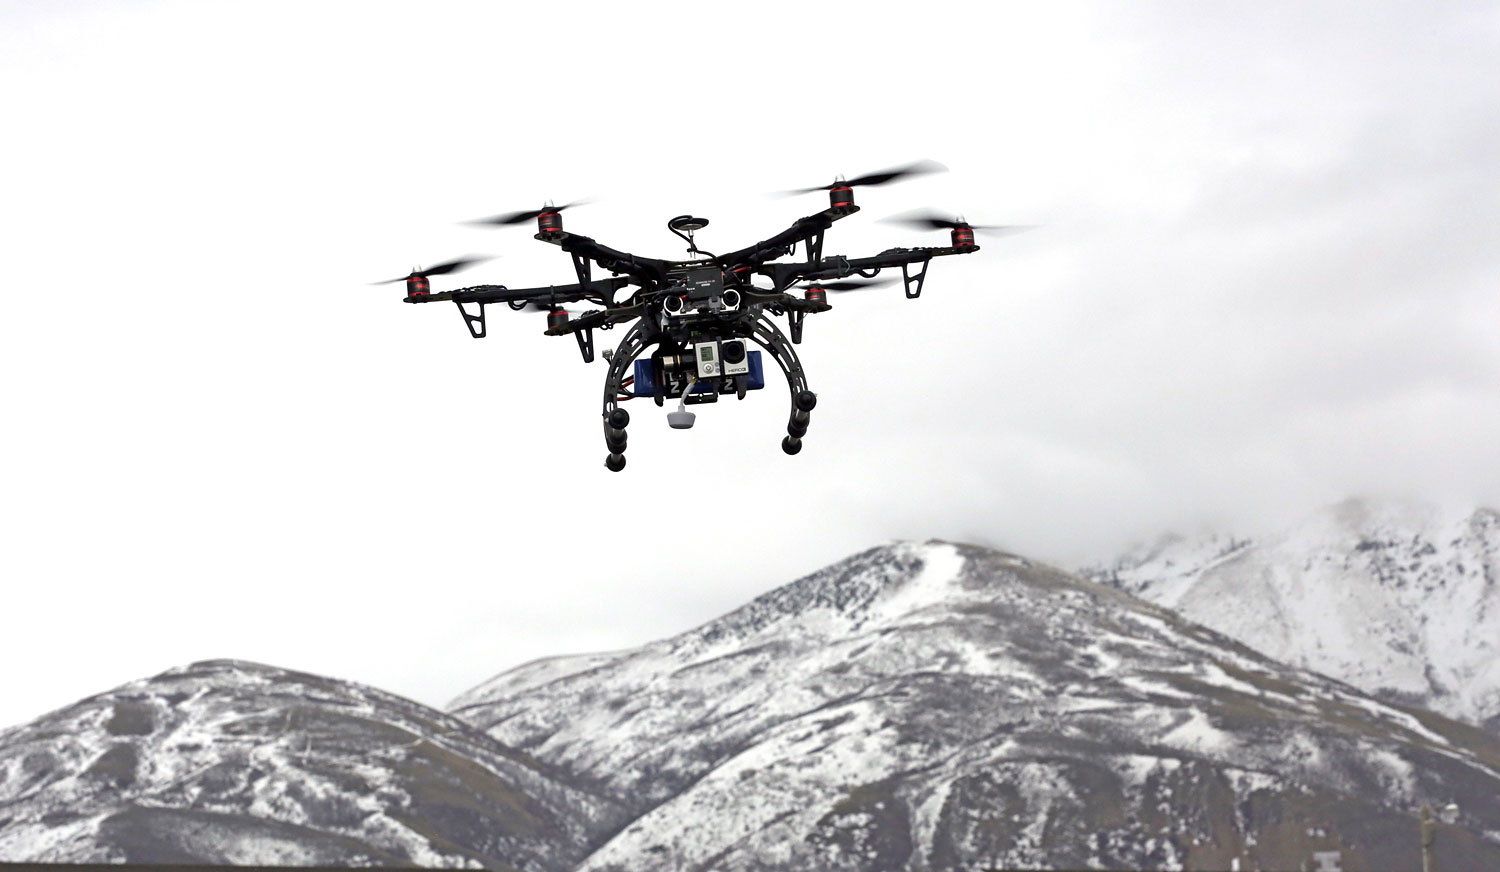 A drone is flown during a demonstration, in Brigham City, Utah, on Feb. 13, 2014